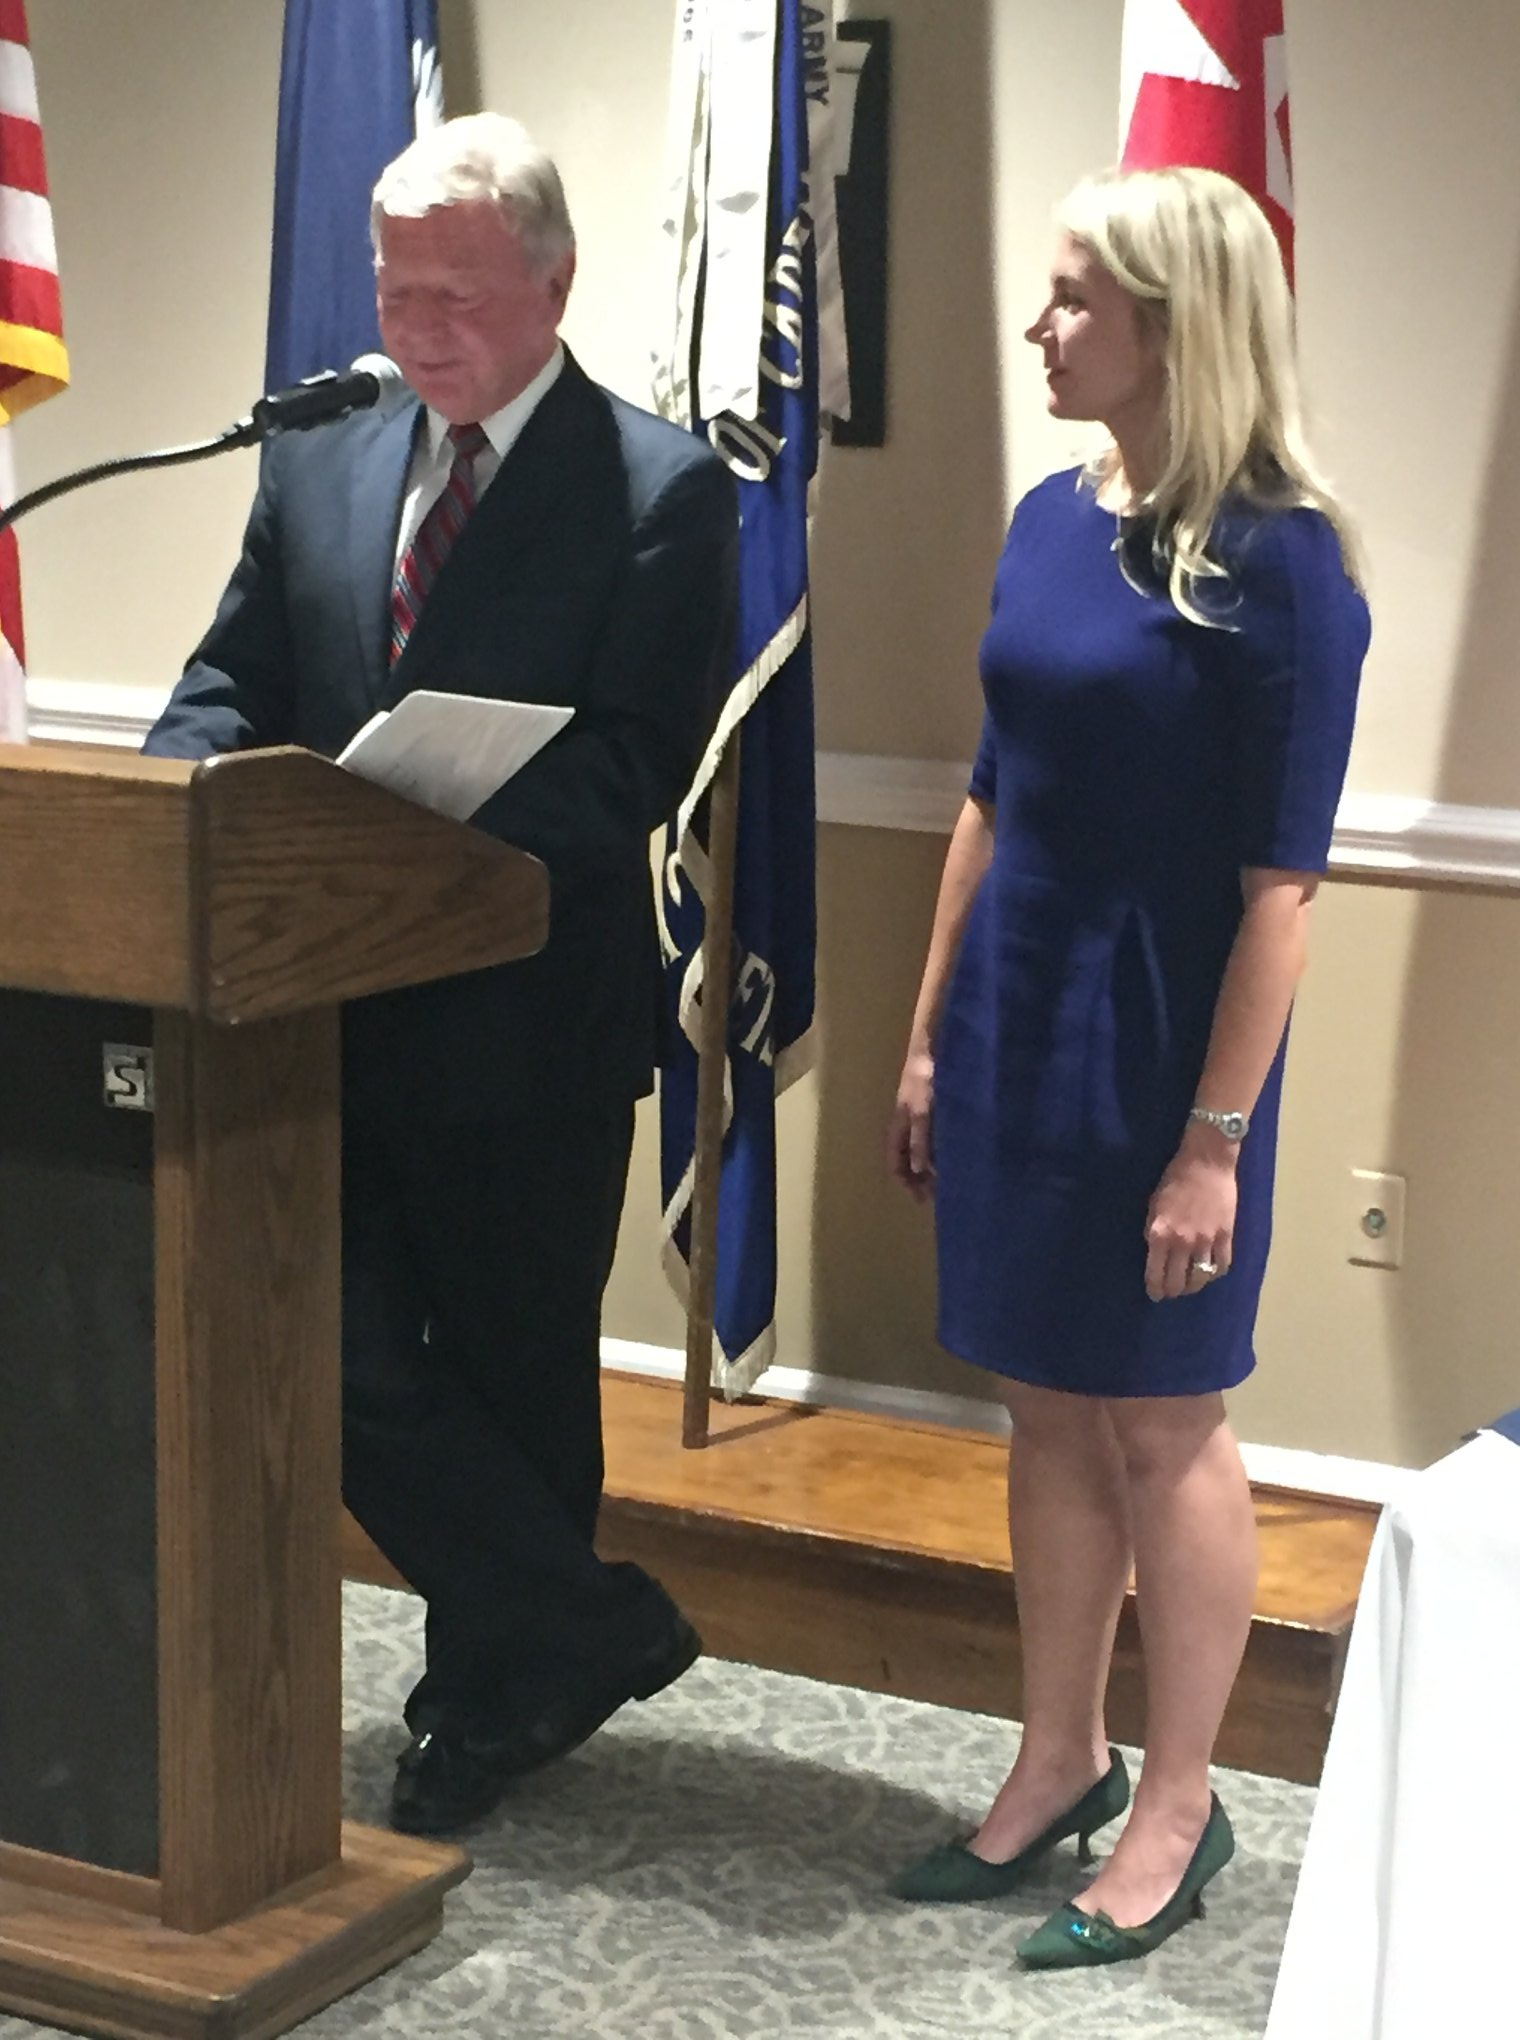 Dr. Mark Bebensee congratulating a newly promote professor, Lauren Rule Maxell at banquet in 2019